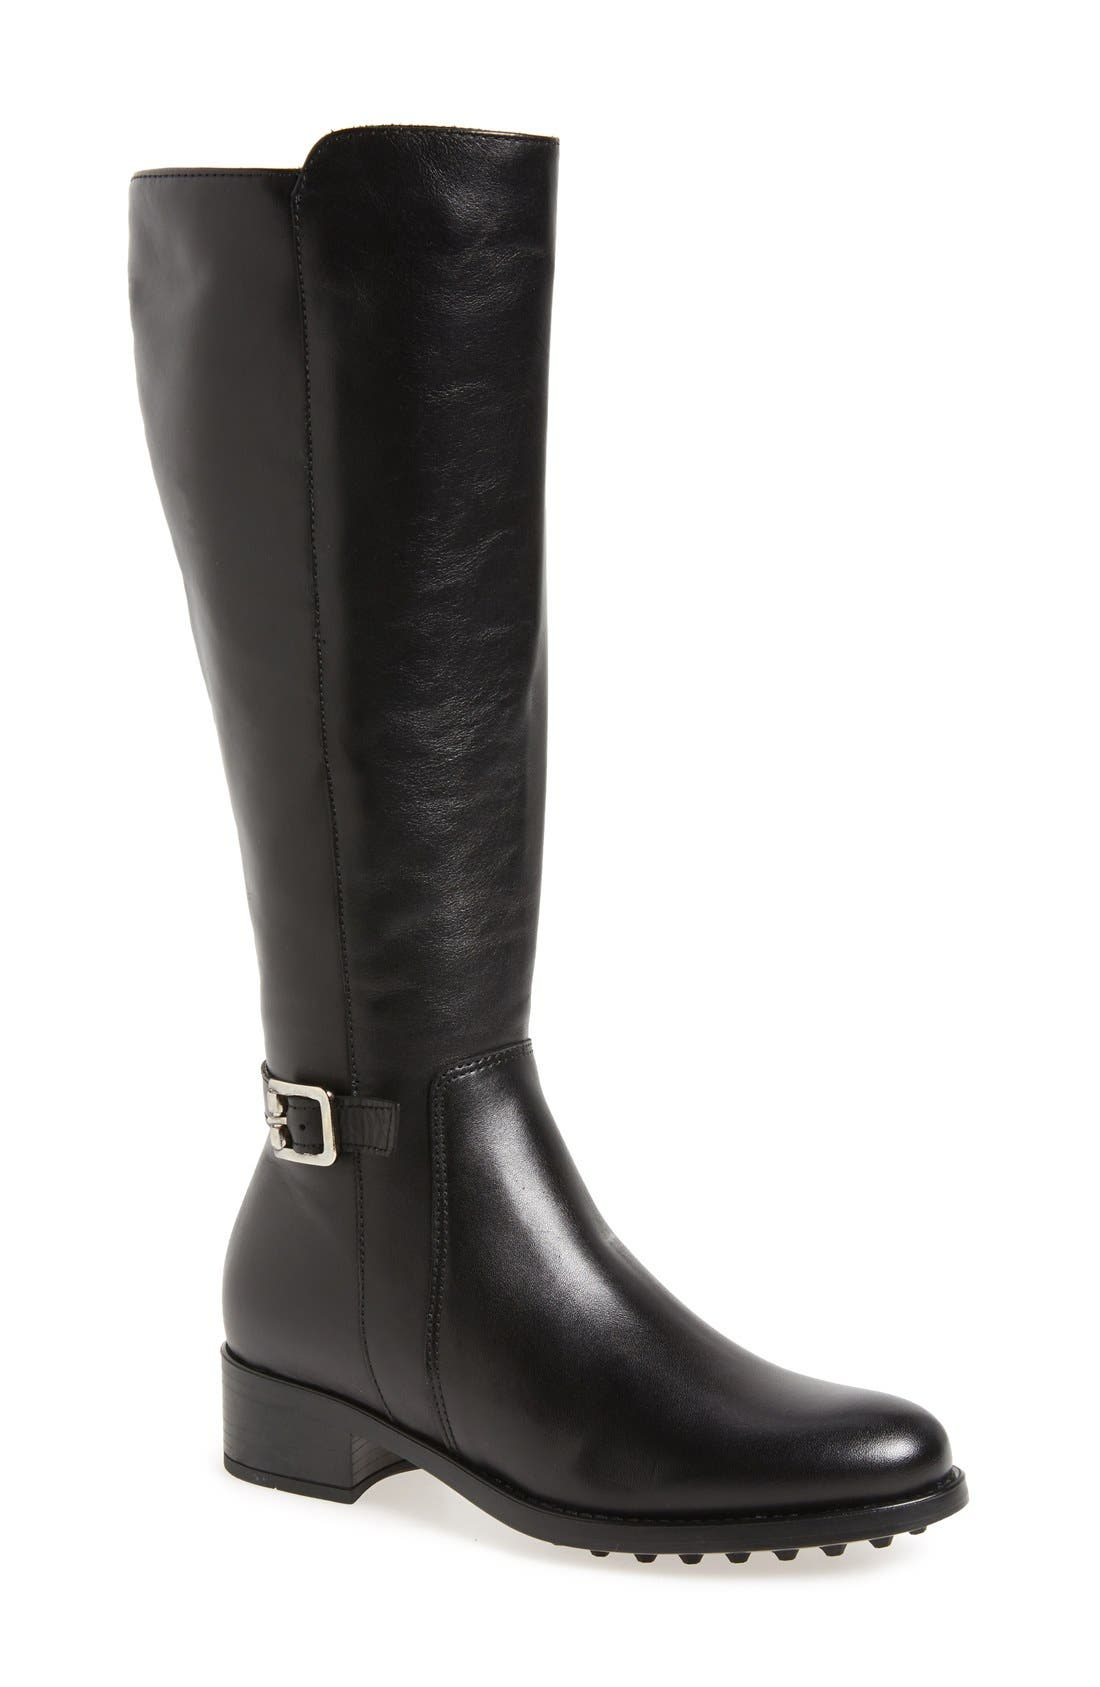 LA CANADIENNE Silvana Waterproof Riding Boot, Main, color, BLACK LEATHER